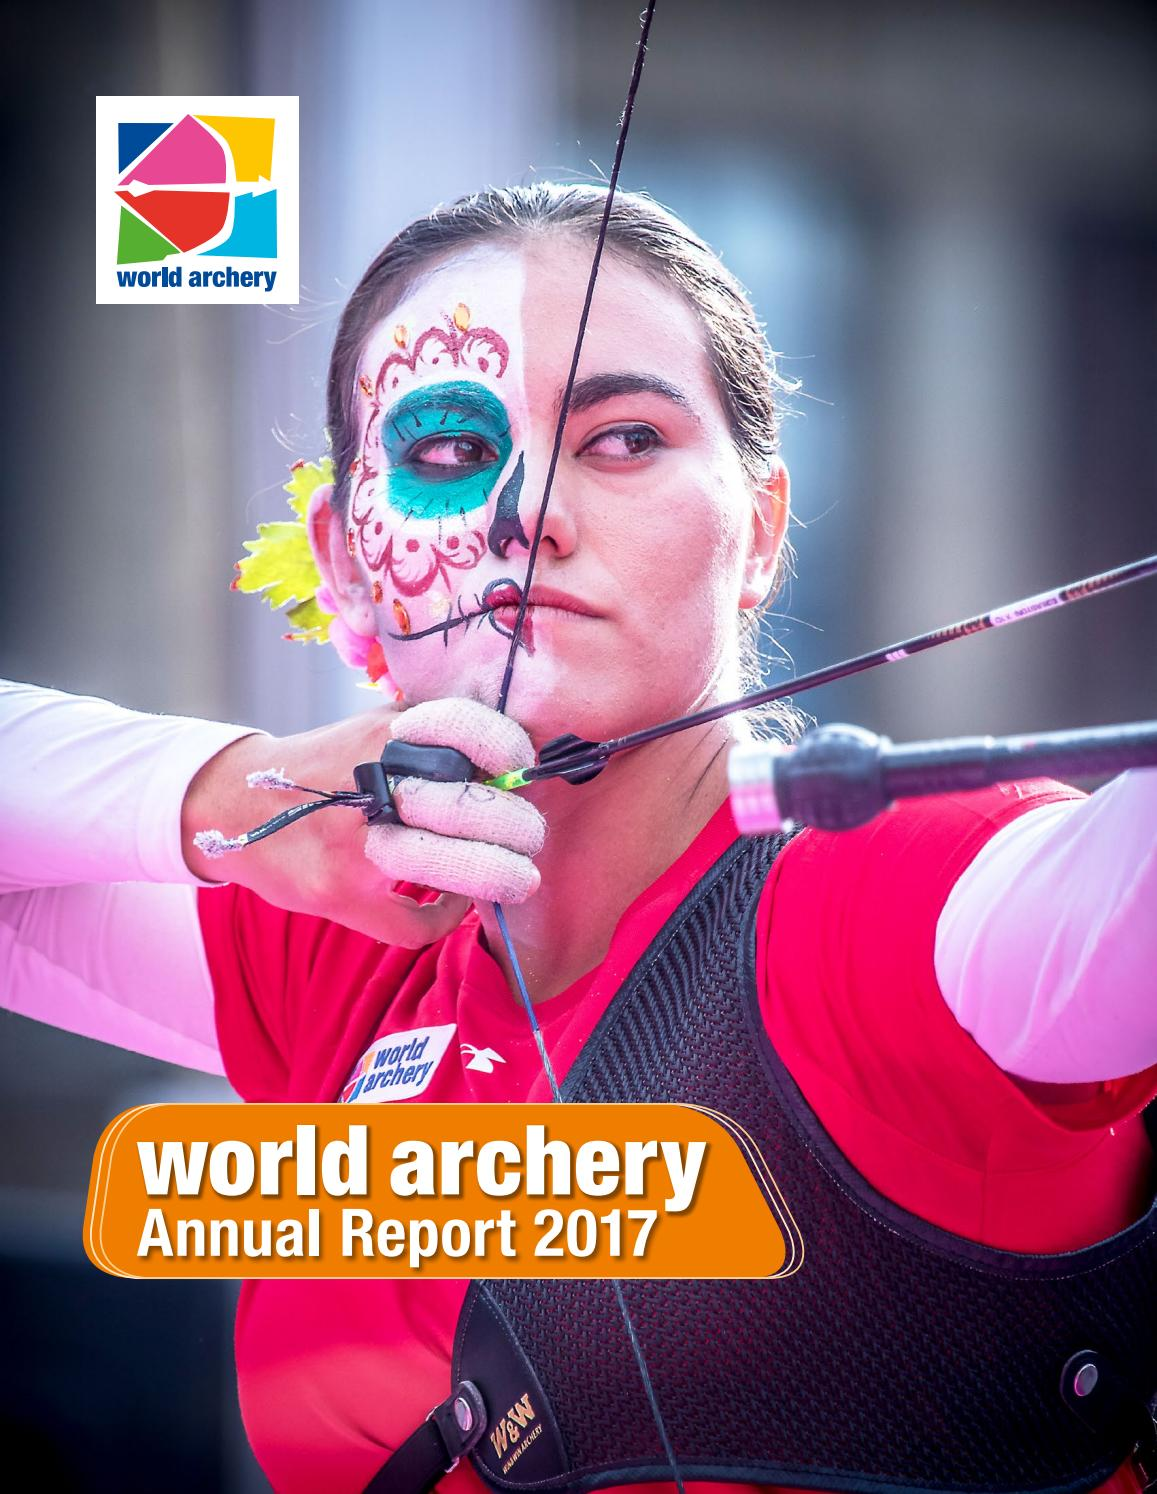 Annual Report 2017 by World Archery issuu